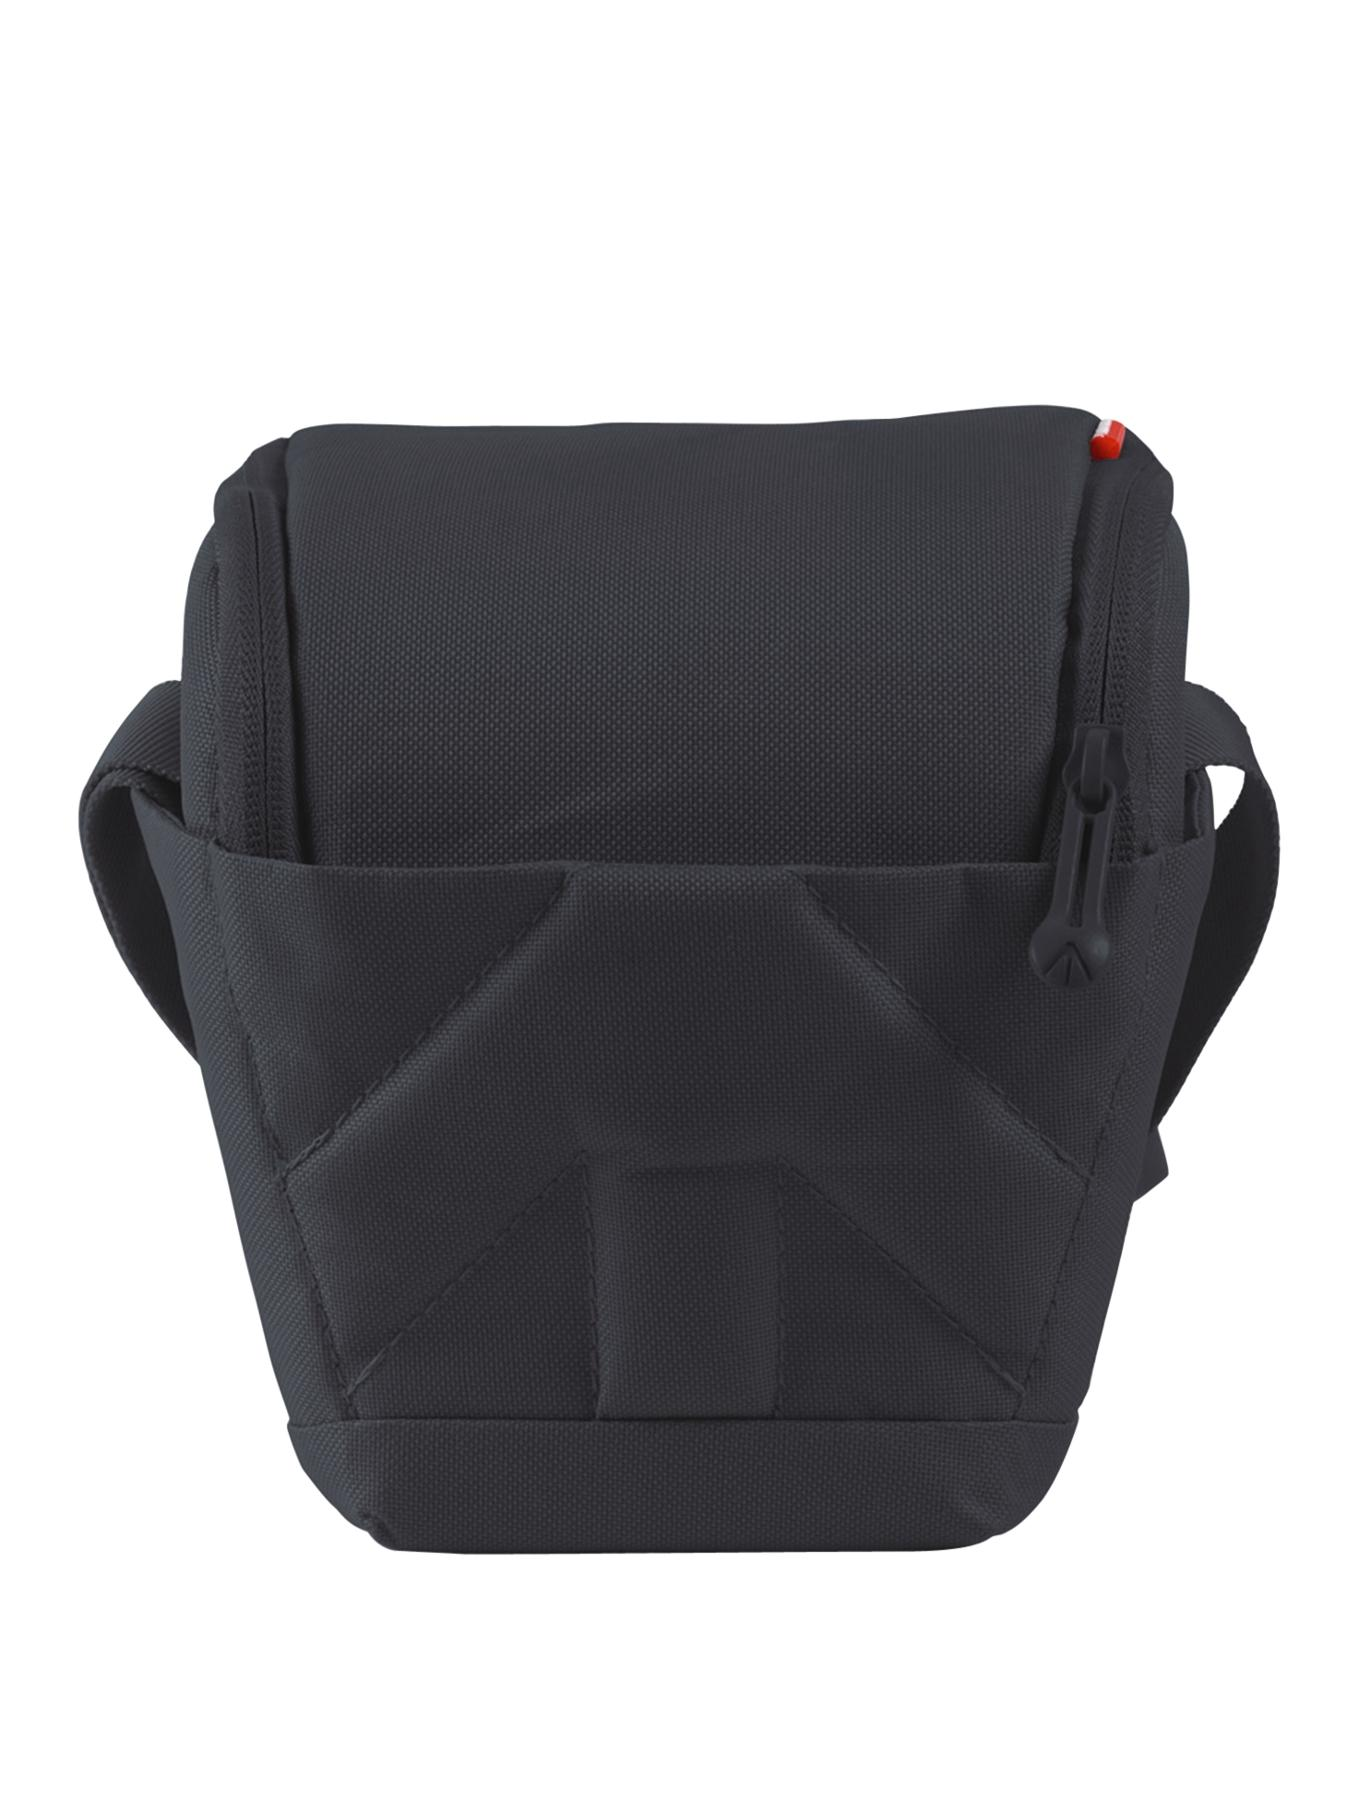 Vivace 20 Holster